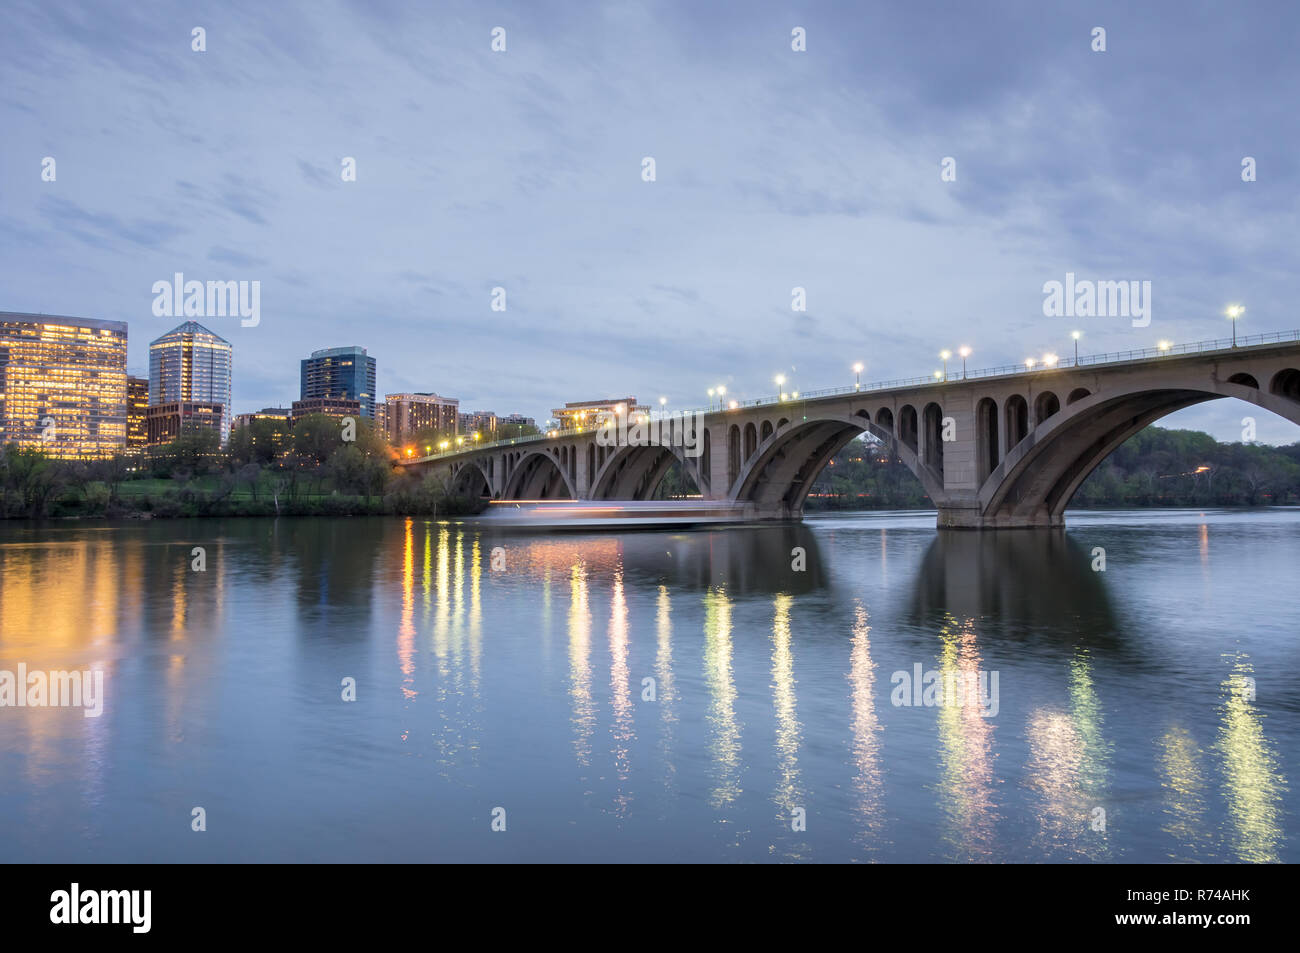 Dusk over Key Bridge. Shot from Georgetown in Washington DC looking towards Rosslyn, Virginia. - Stock Image